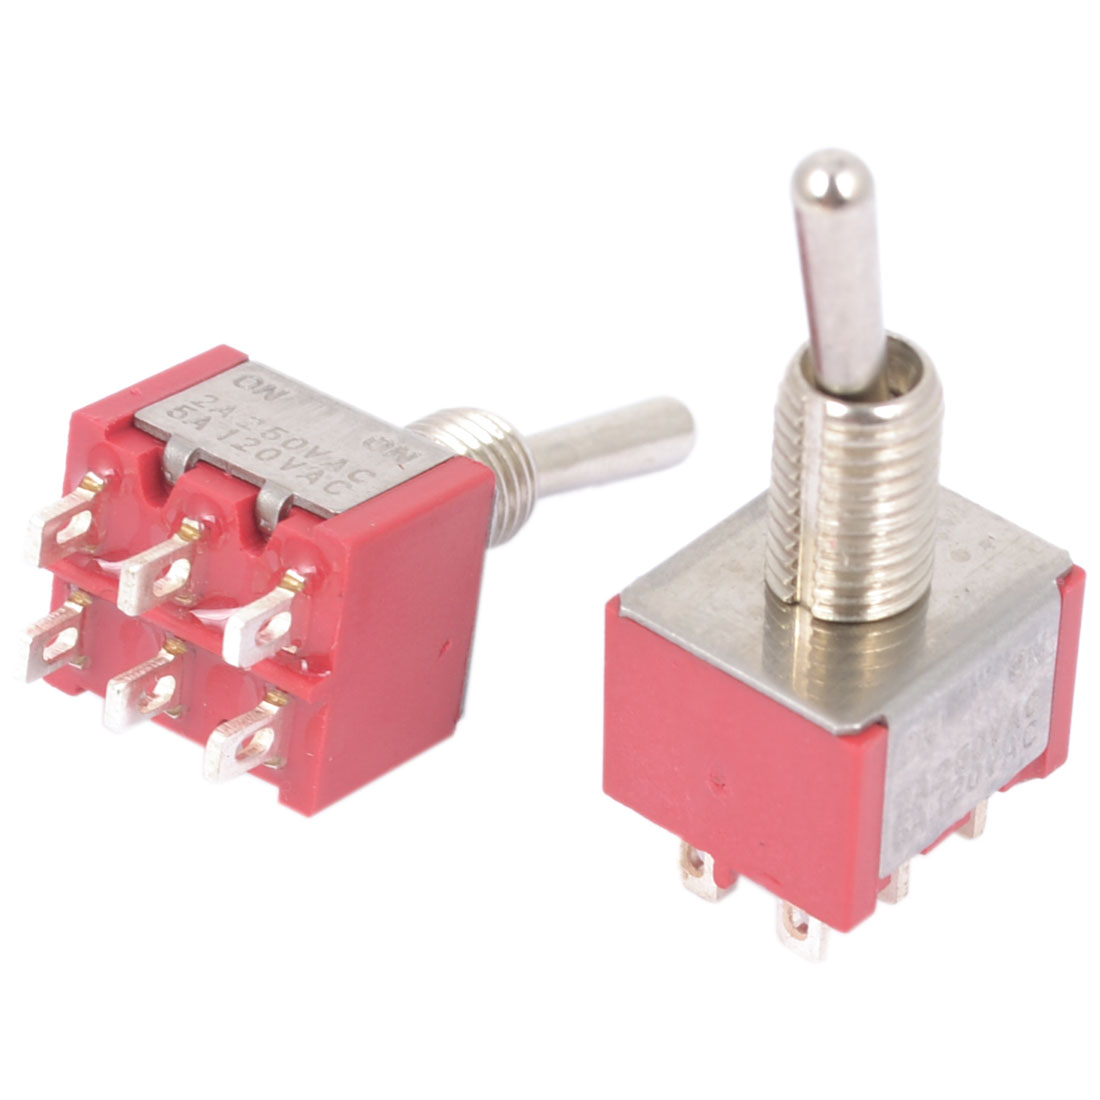 AC 2A 250V 5A 12V Rocker Type DPDT Latching 6 Terminals Toggle Switch 2pcs